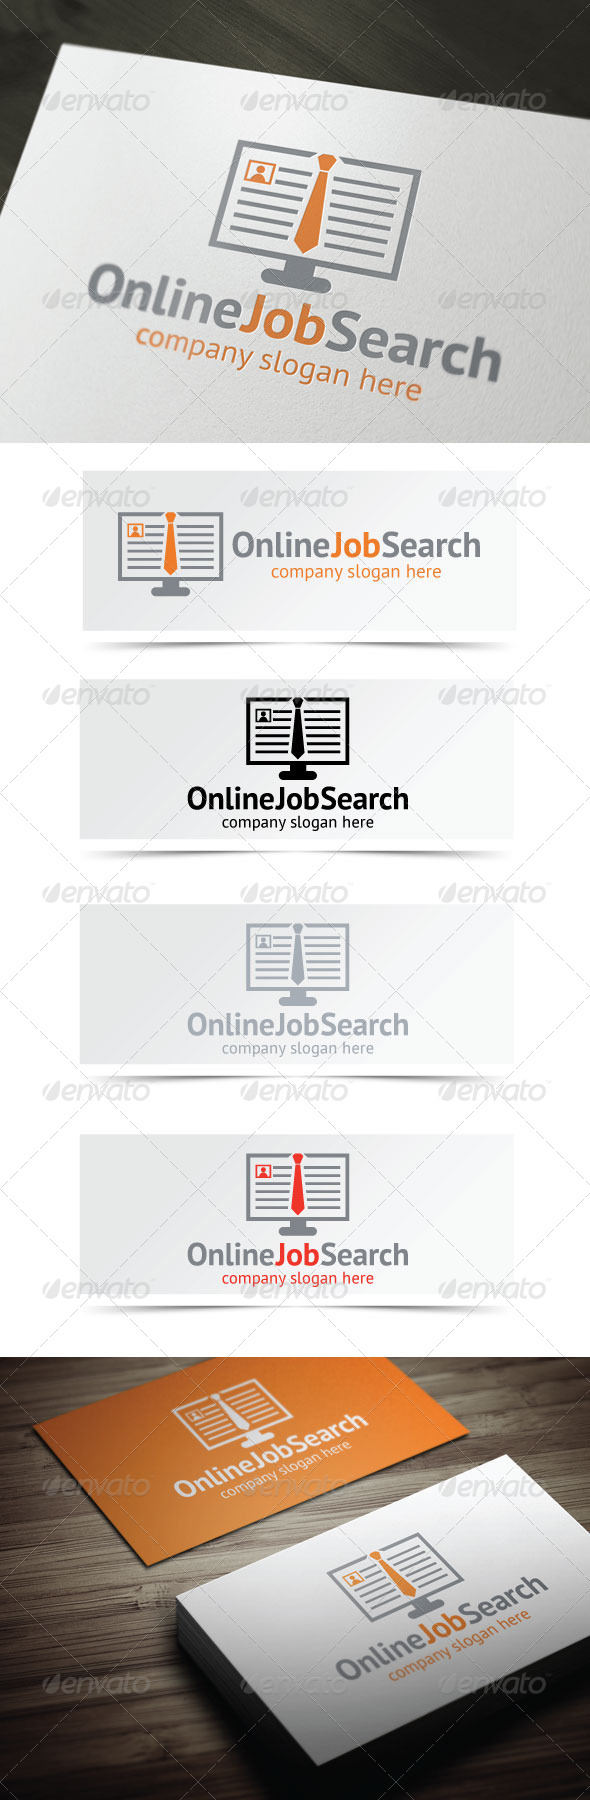 GraphicRiver Online Job Search 4342836